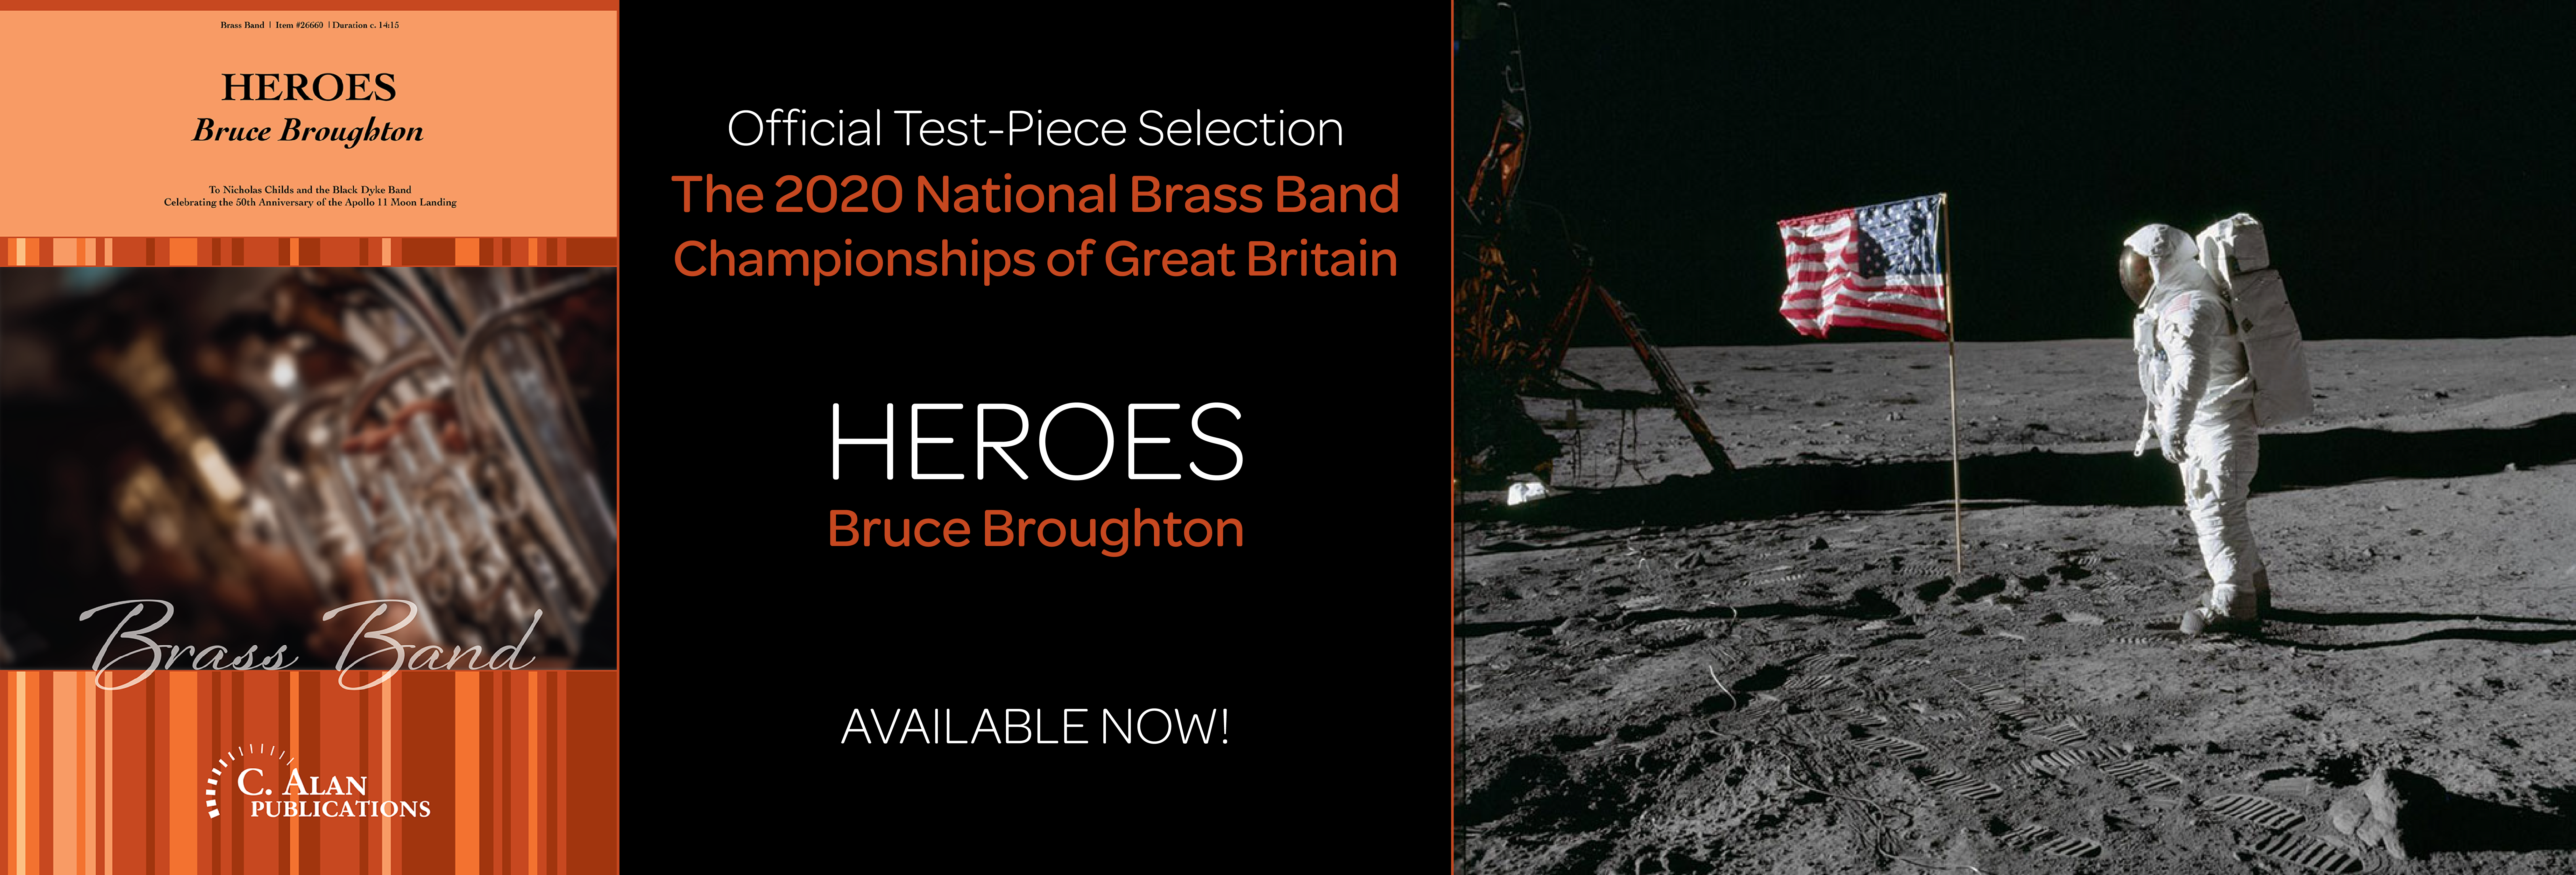 HEROES by Bruce Broughton